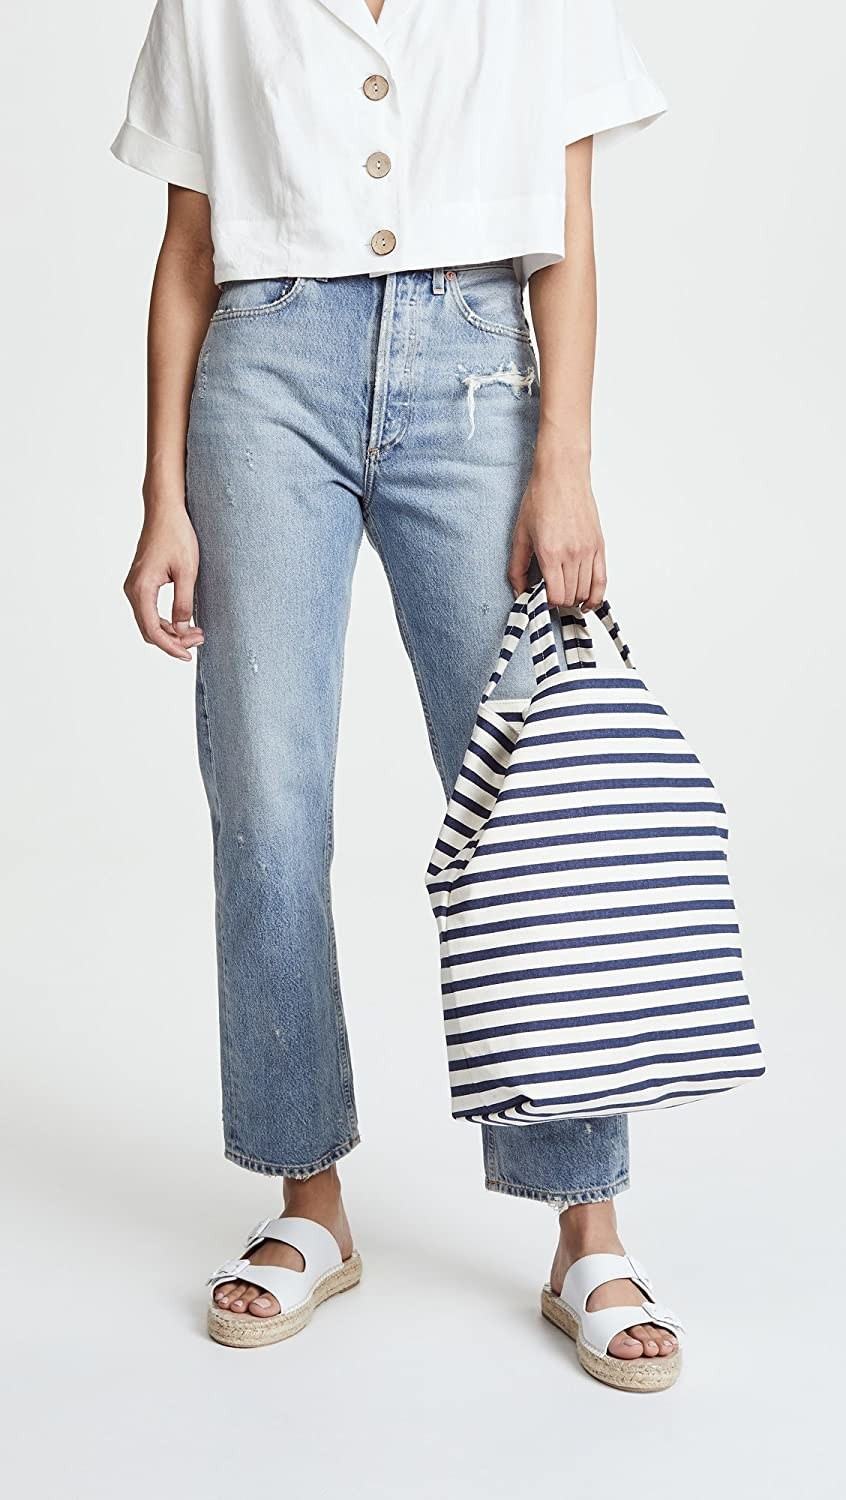 Model carrying the blue and white striped bag